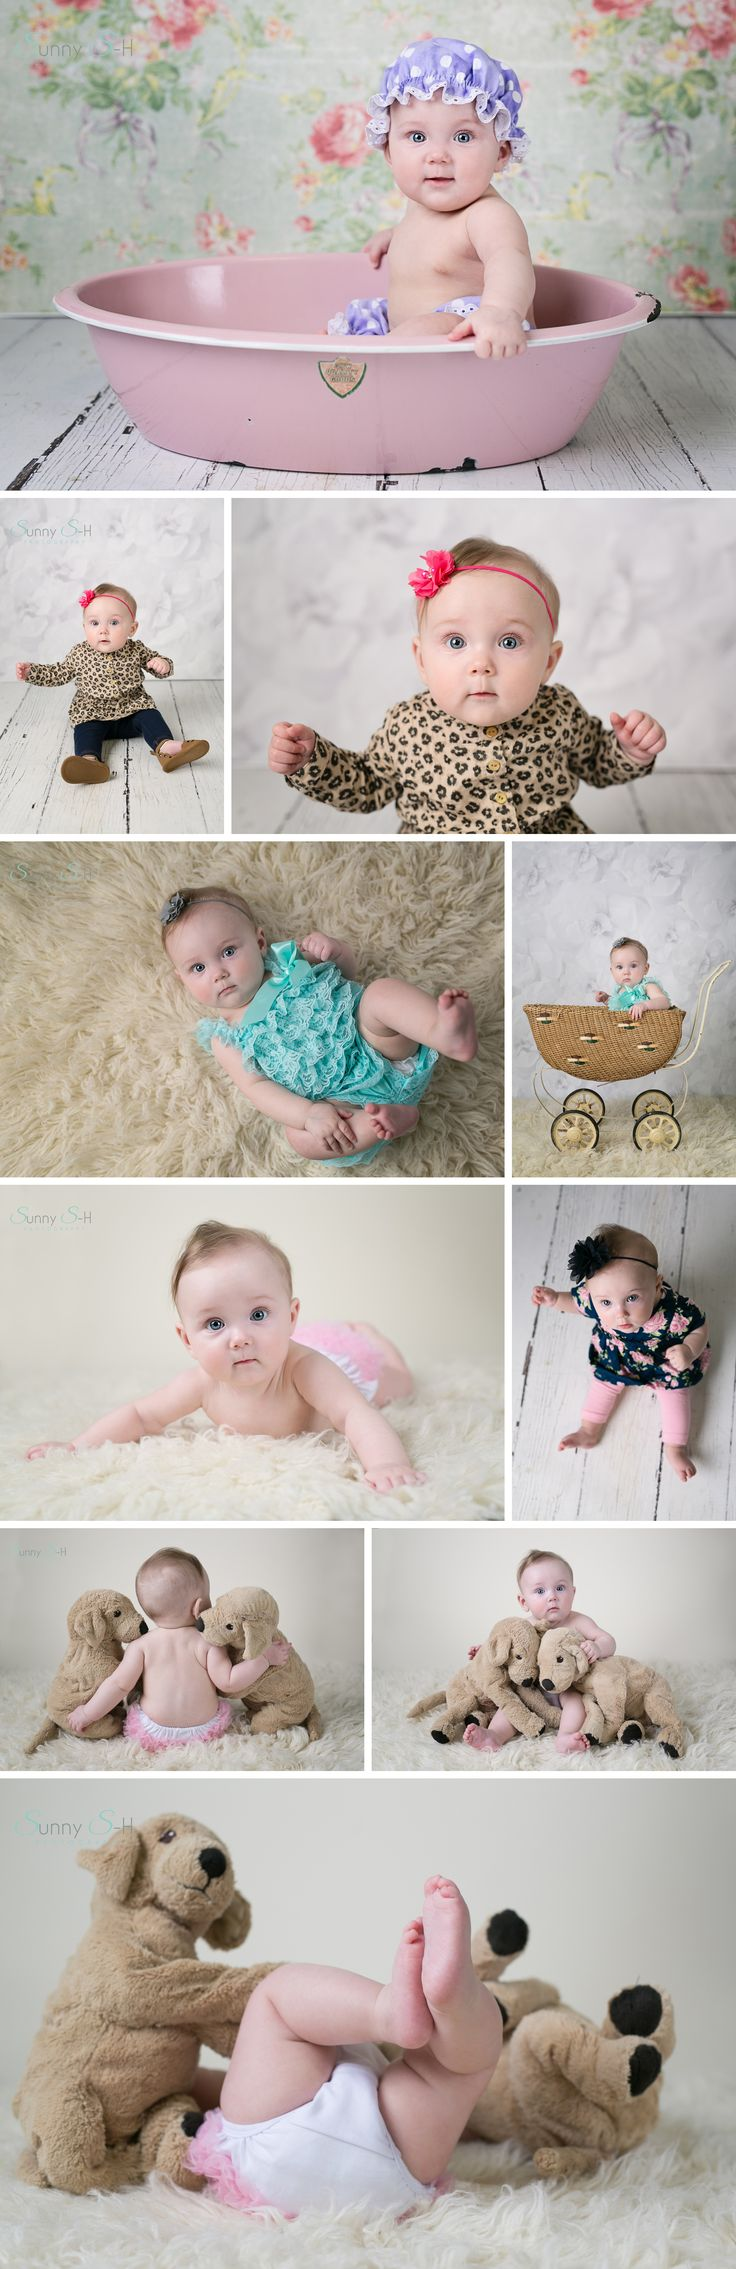 6 month baby in studio photography.  Super cute props and poses.